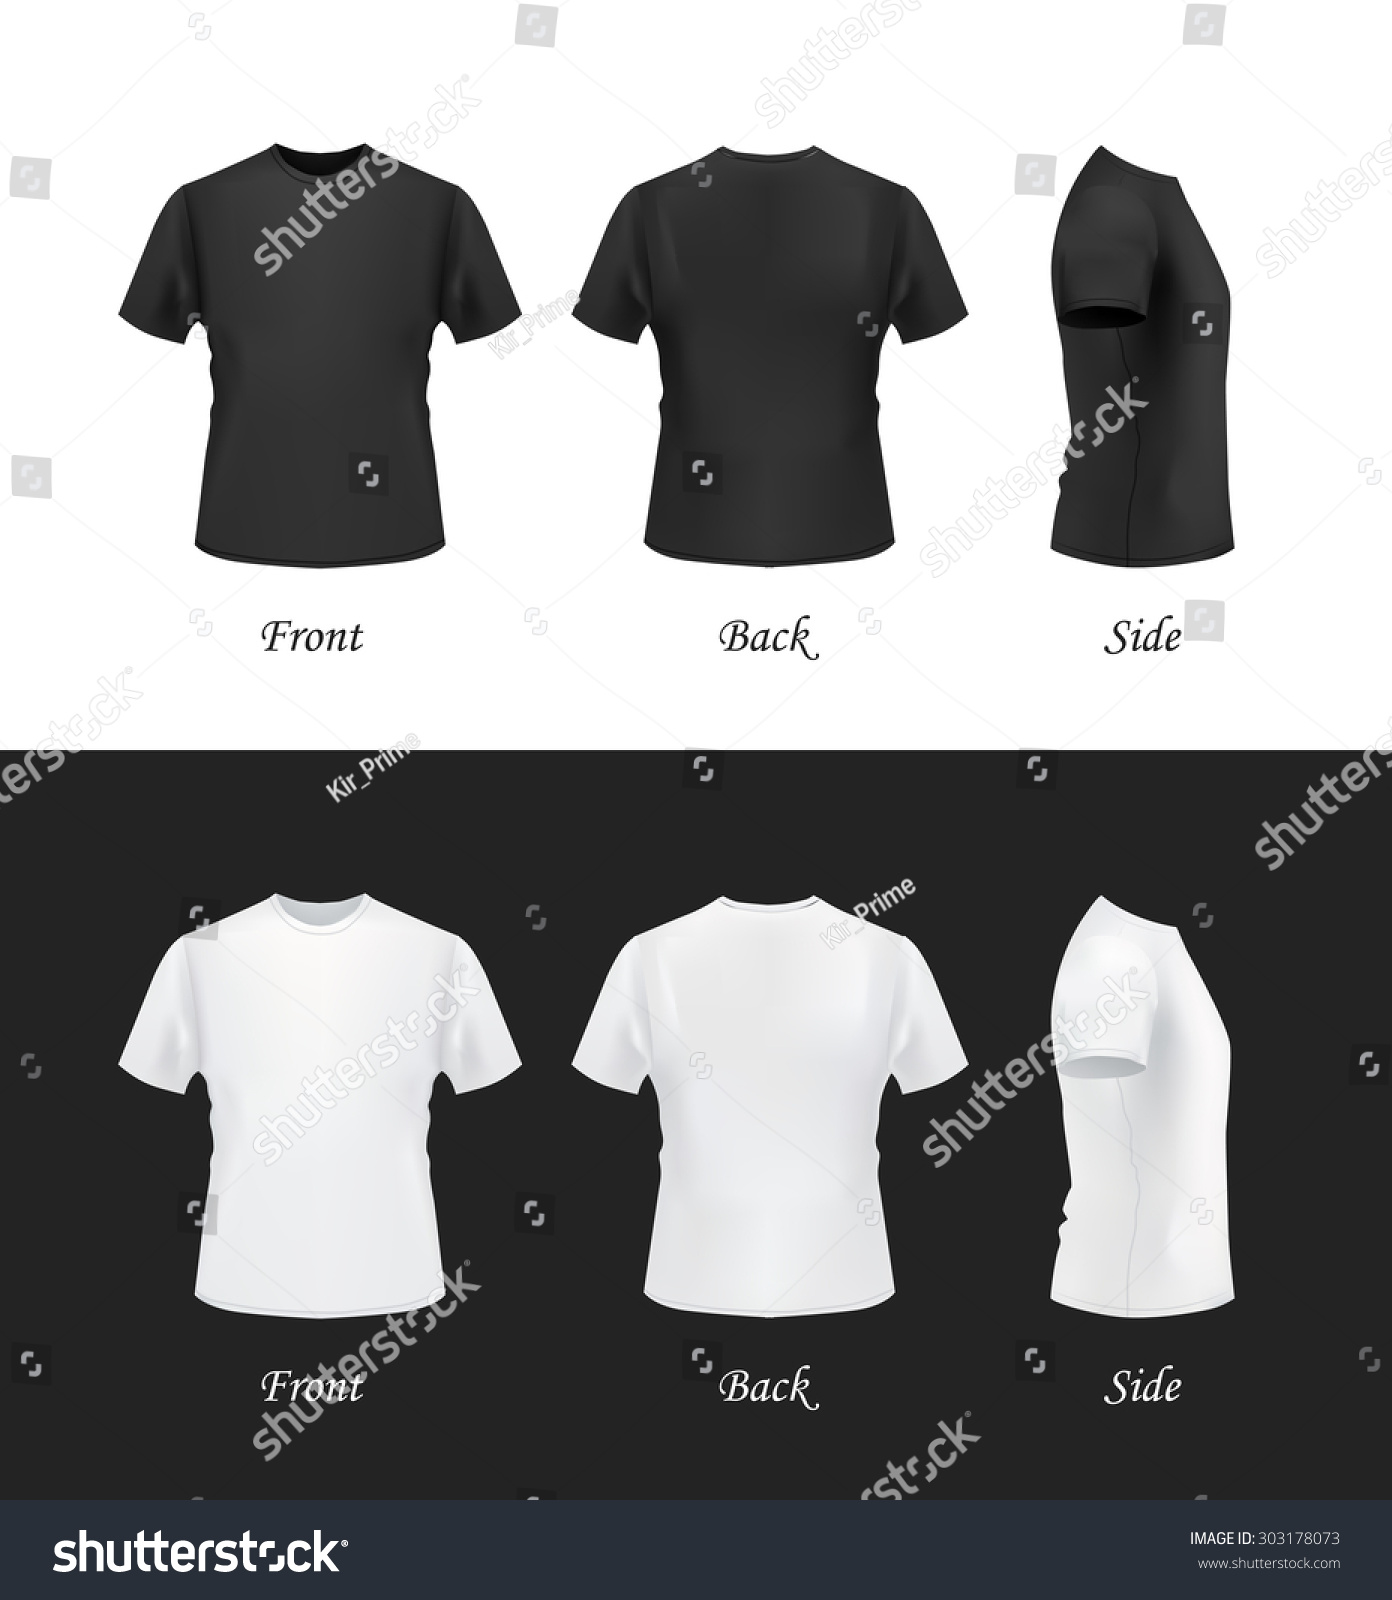 gallery for gt black t shirt template front and back